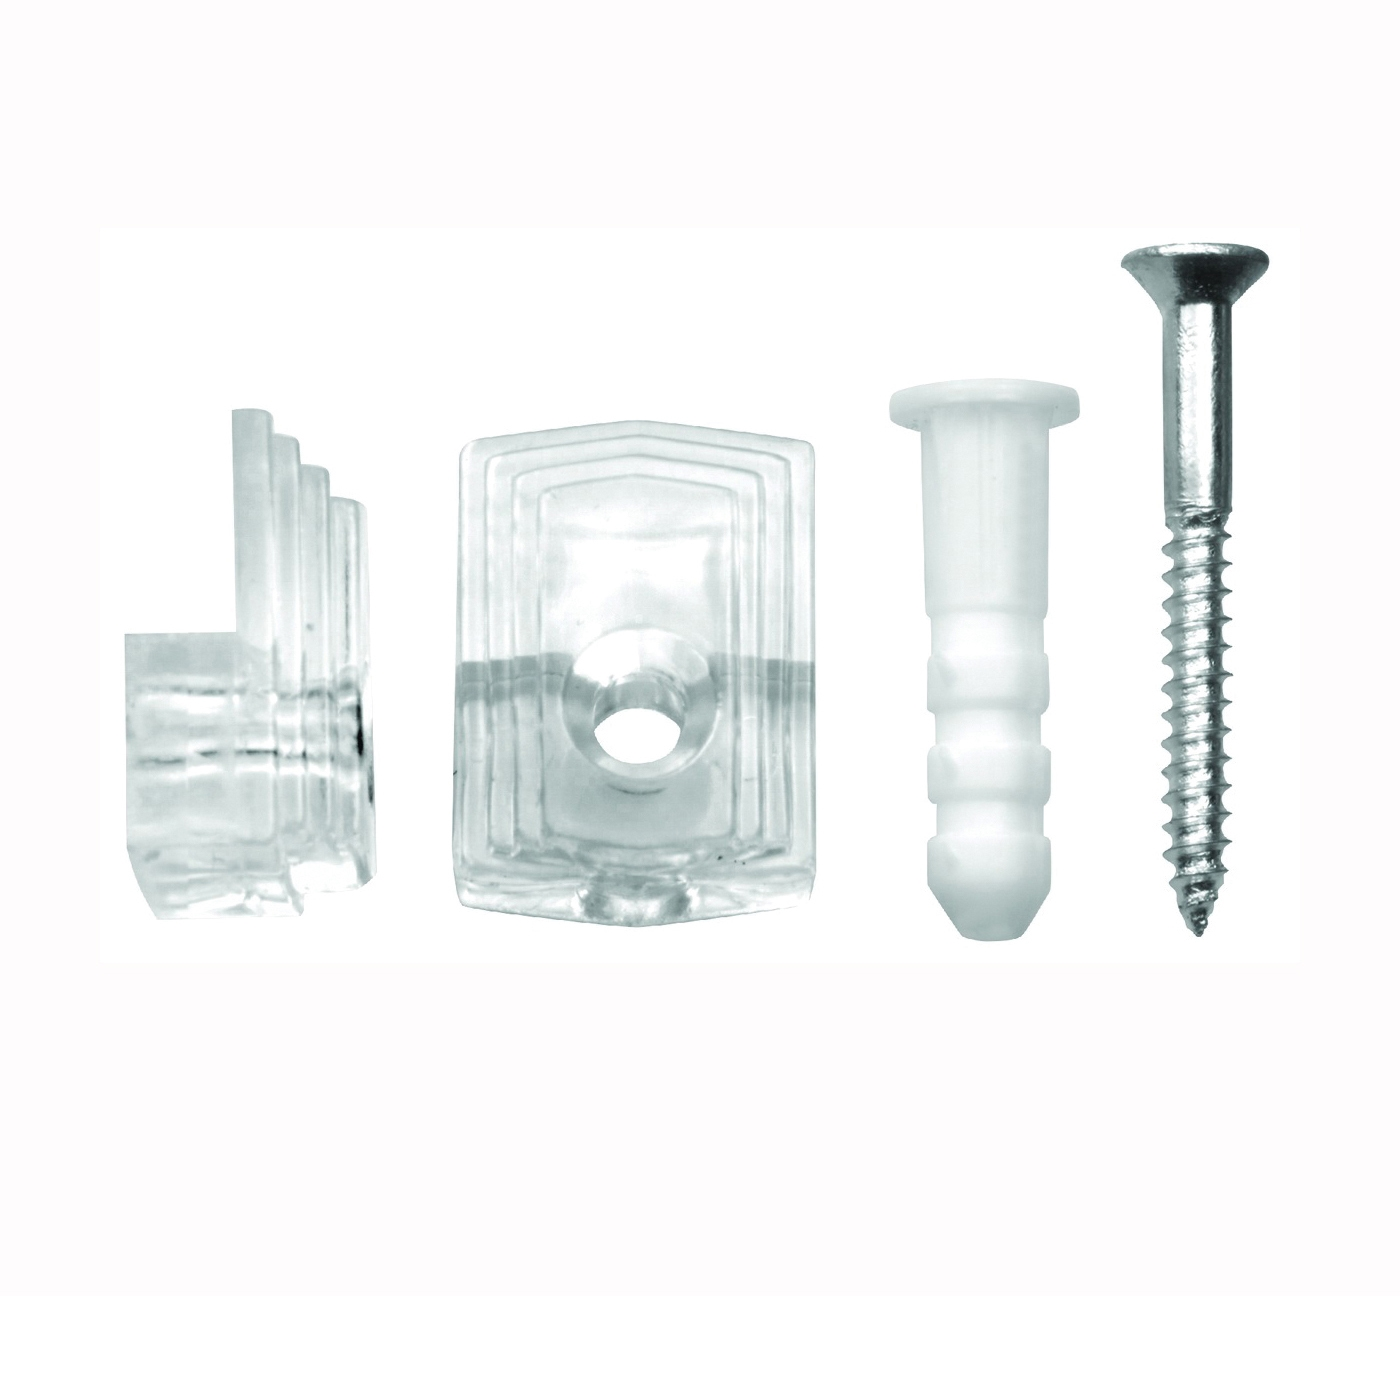 Picture of OOK 50224 Mirror Clip Set, 20 lb, Plastic, Clear, Wall Mounting, 4, Pack